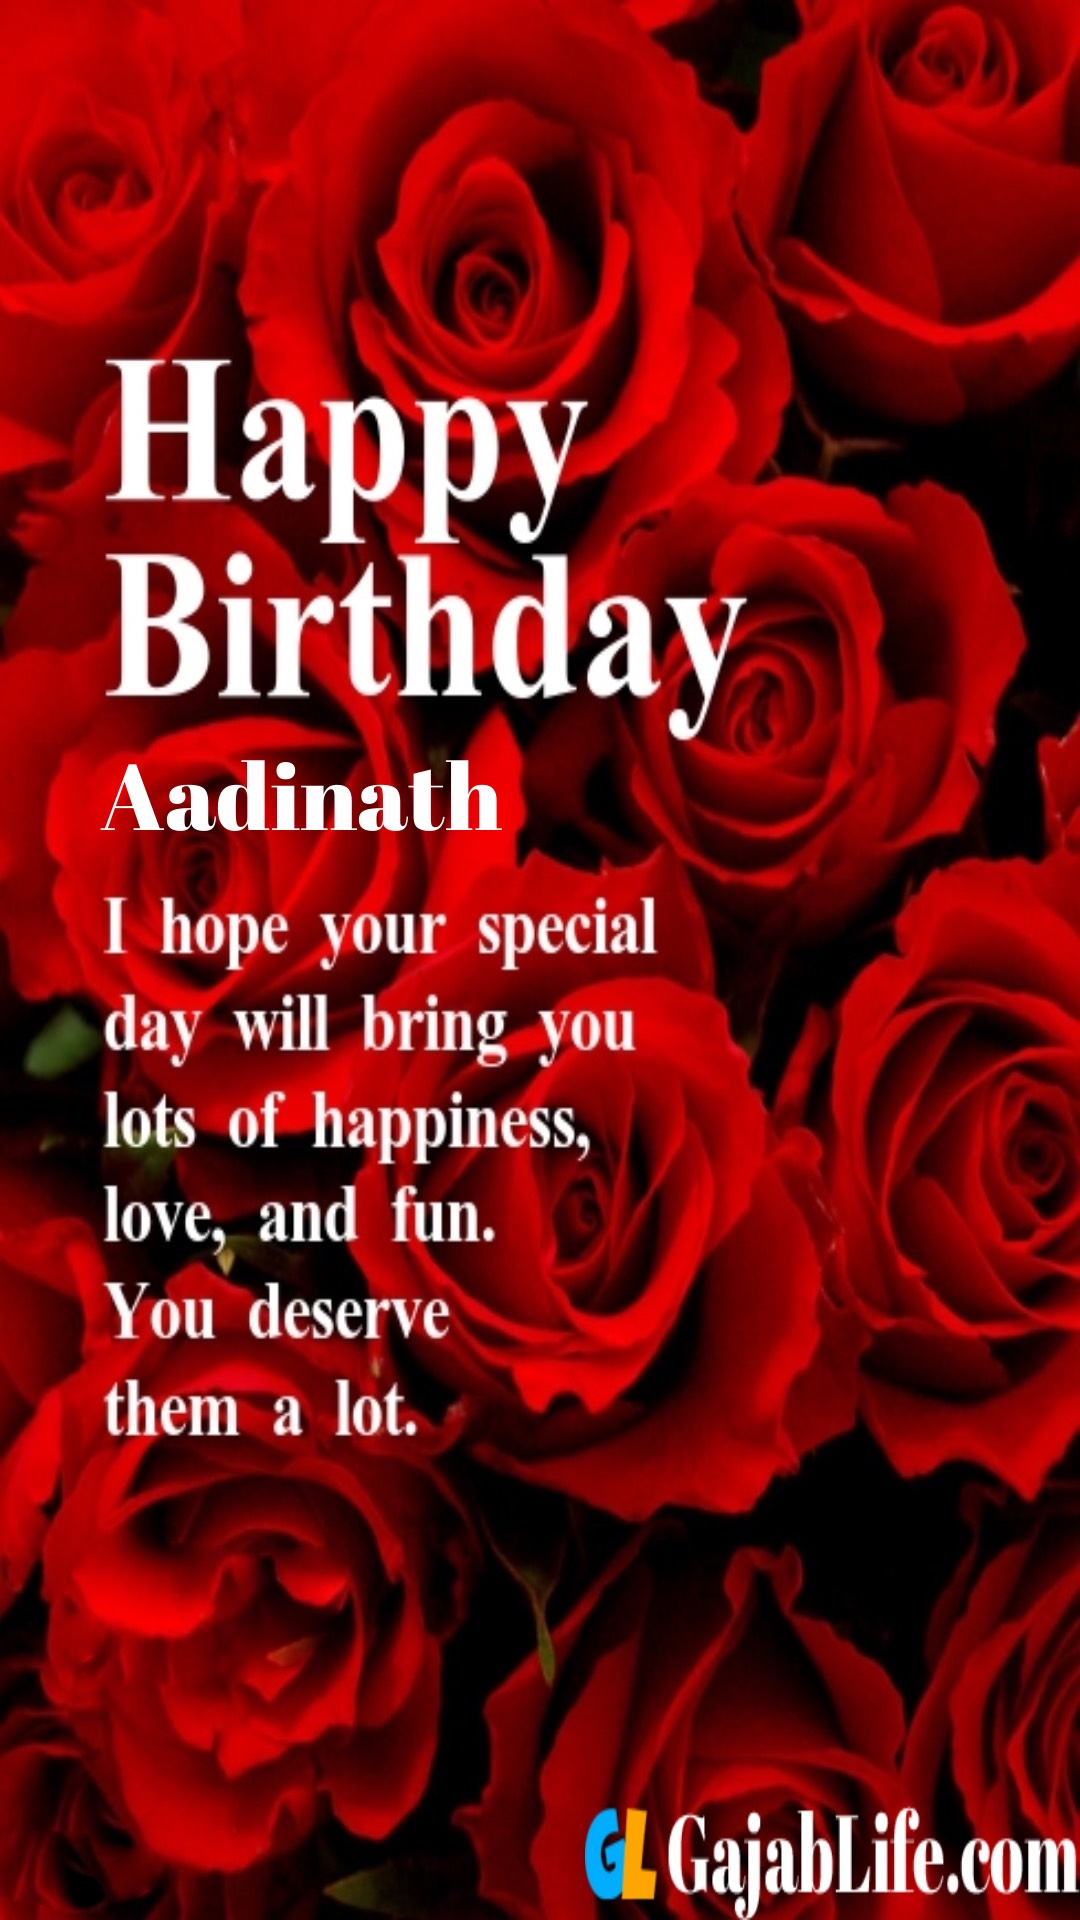 Aadinath birthday greeting card with rose & love